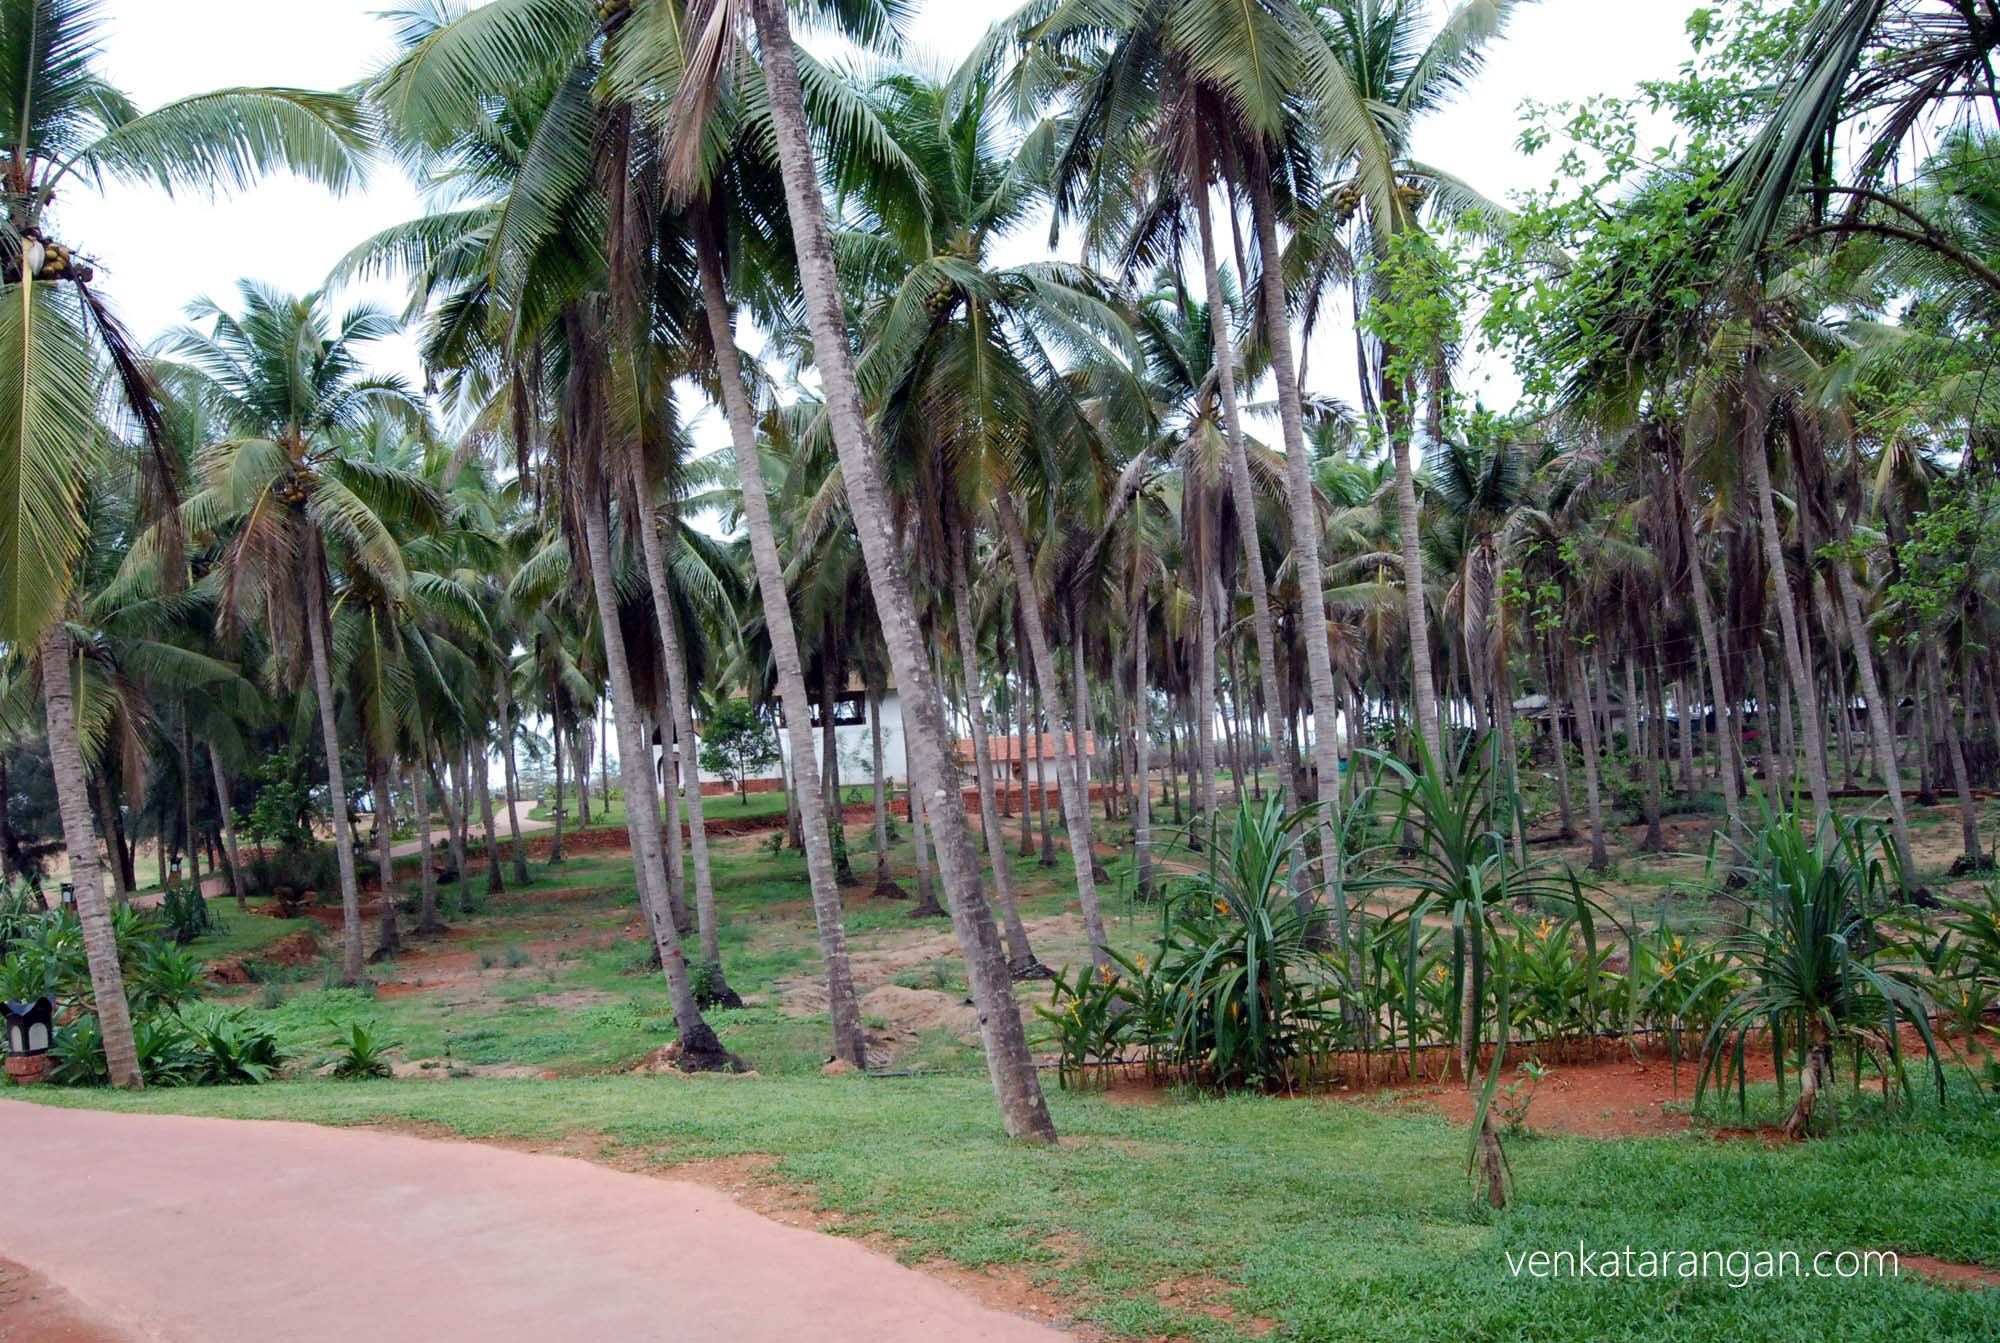 Coconut trees line the property